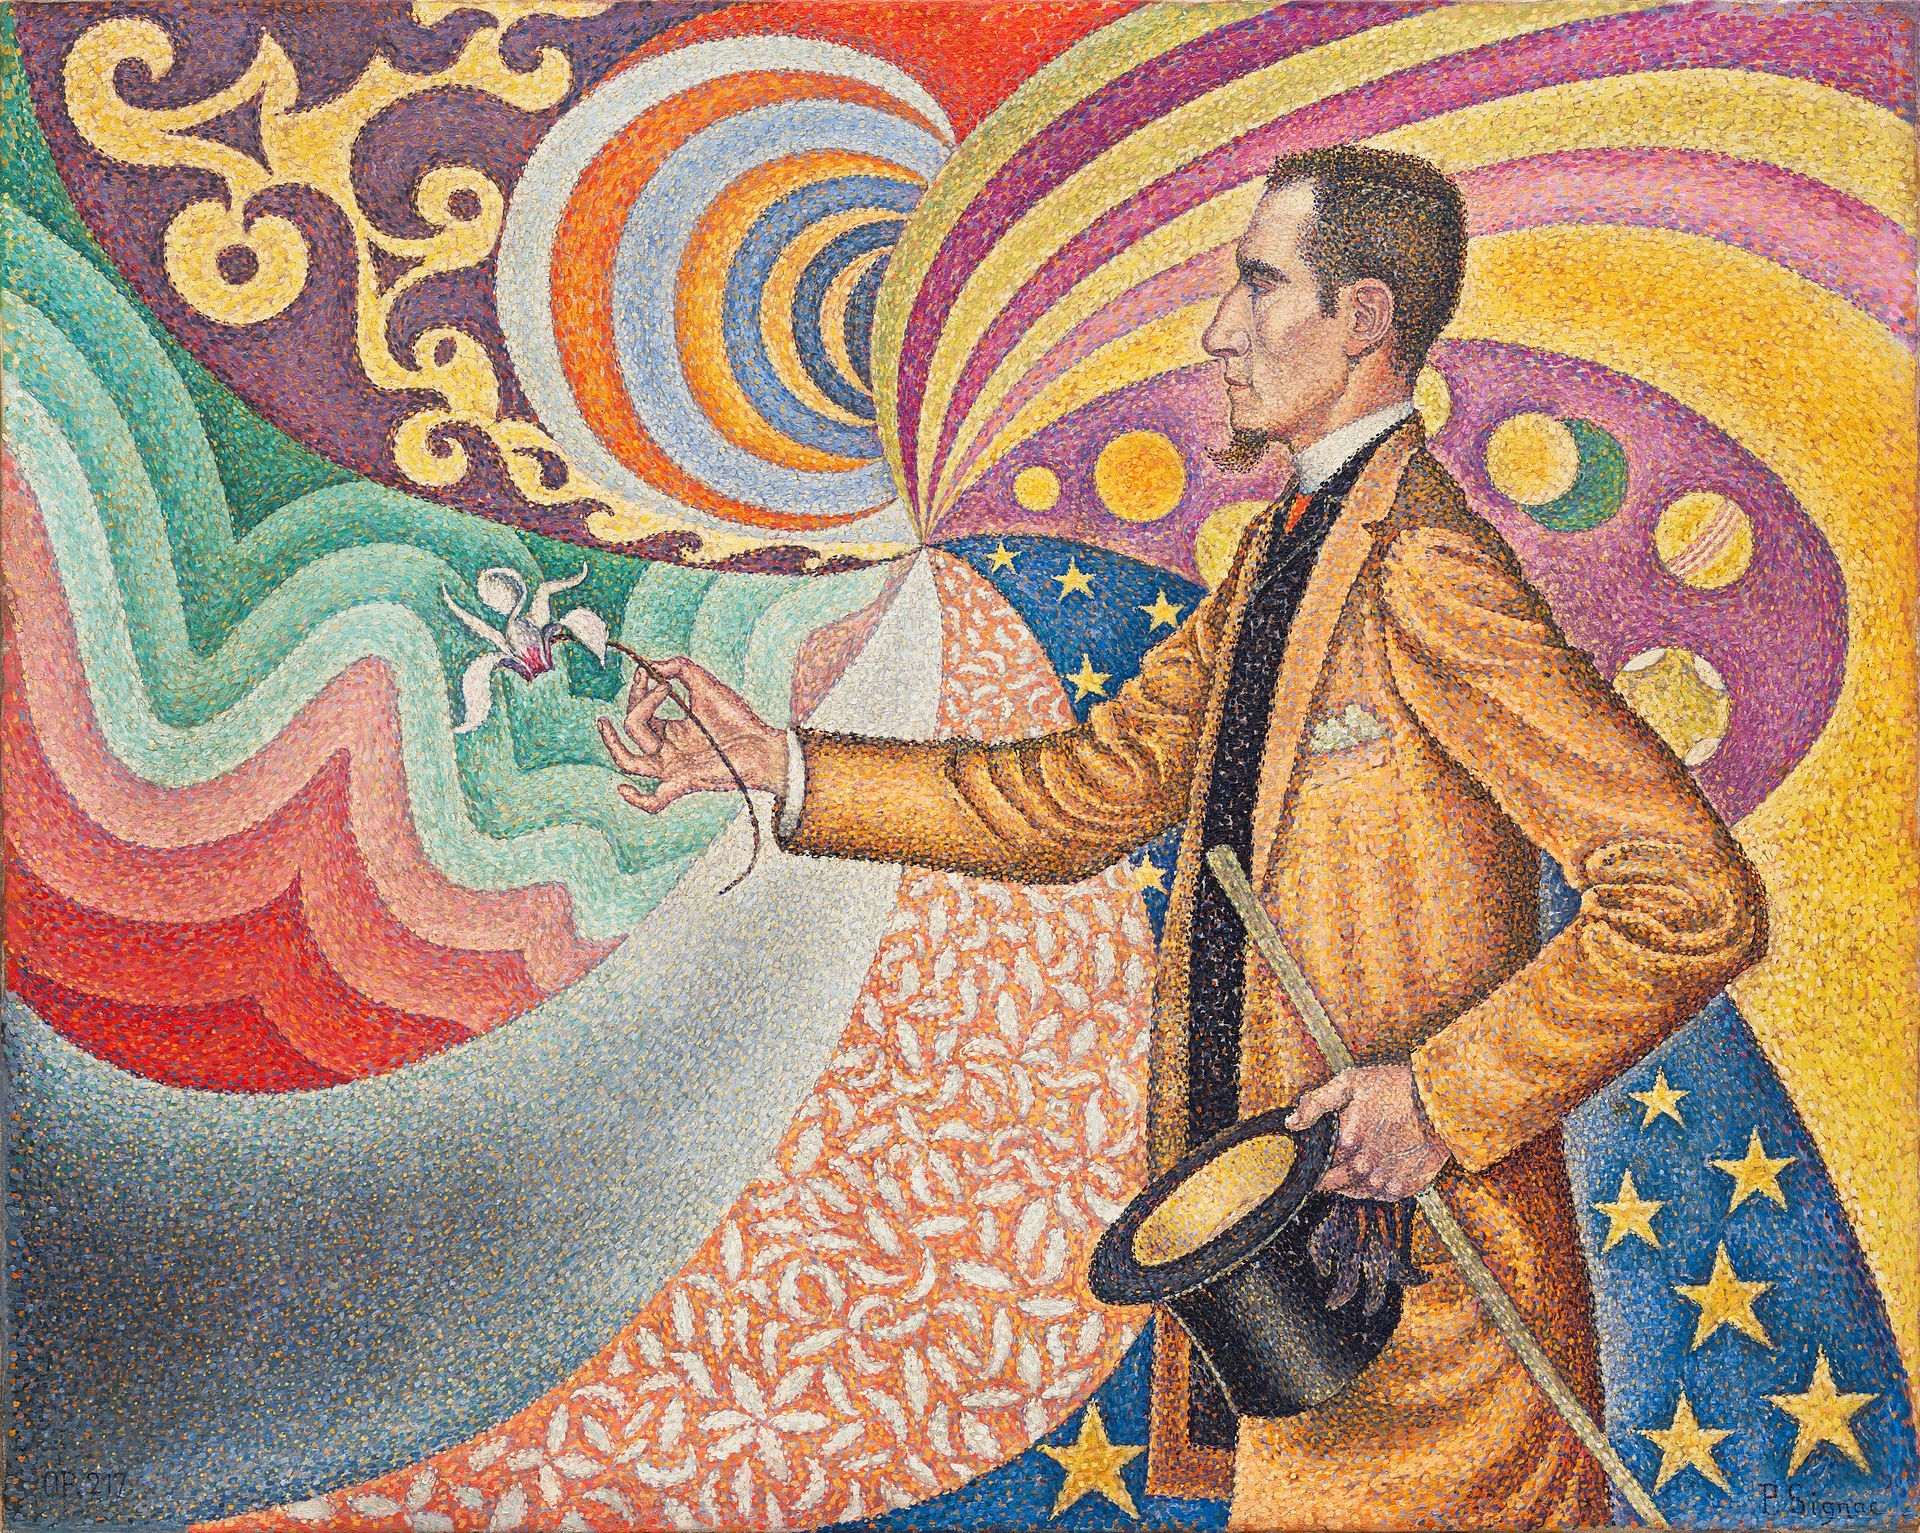 Opus 217. Against the Enamel of a Background Rhythmic with Beats and Angles, Tones, and Tints, Portrait of M. Félix Fénéon in 1890 by Paul Signac, 1890